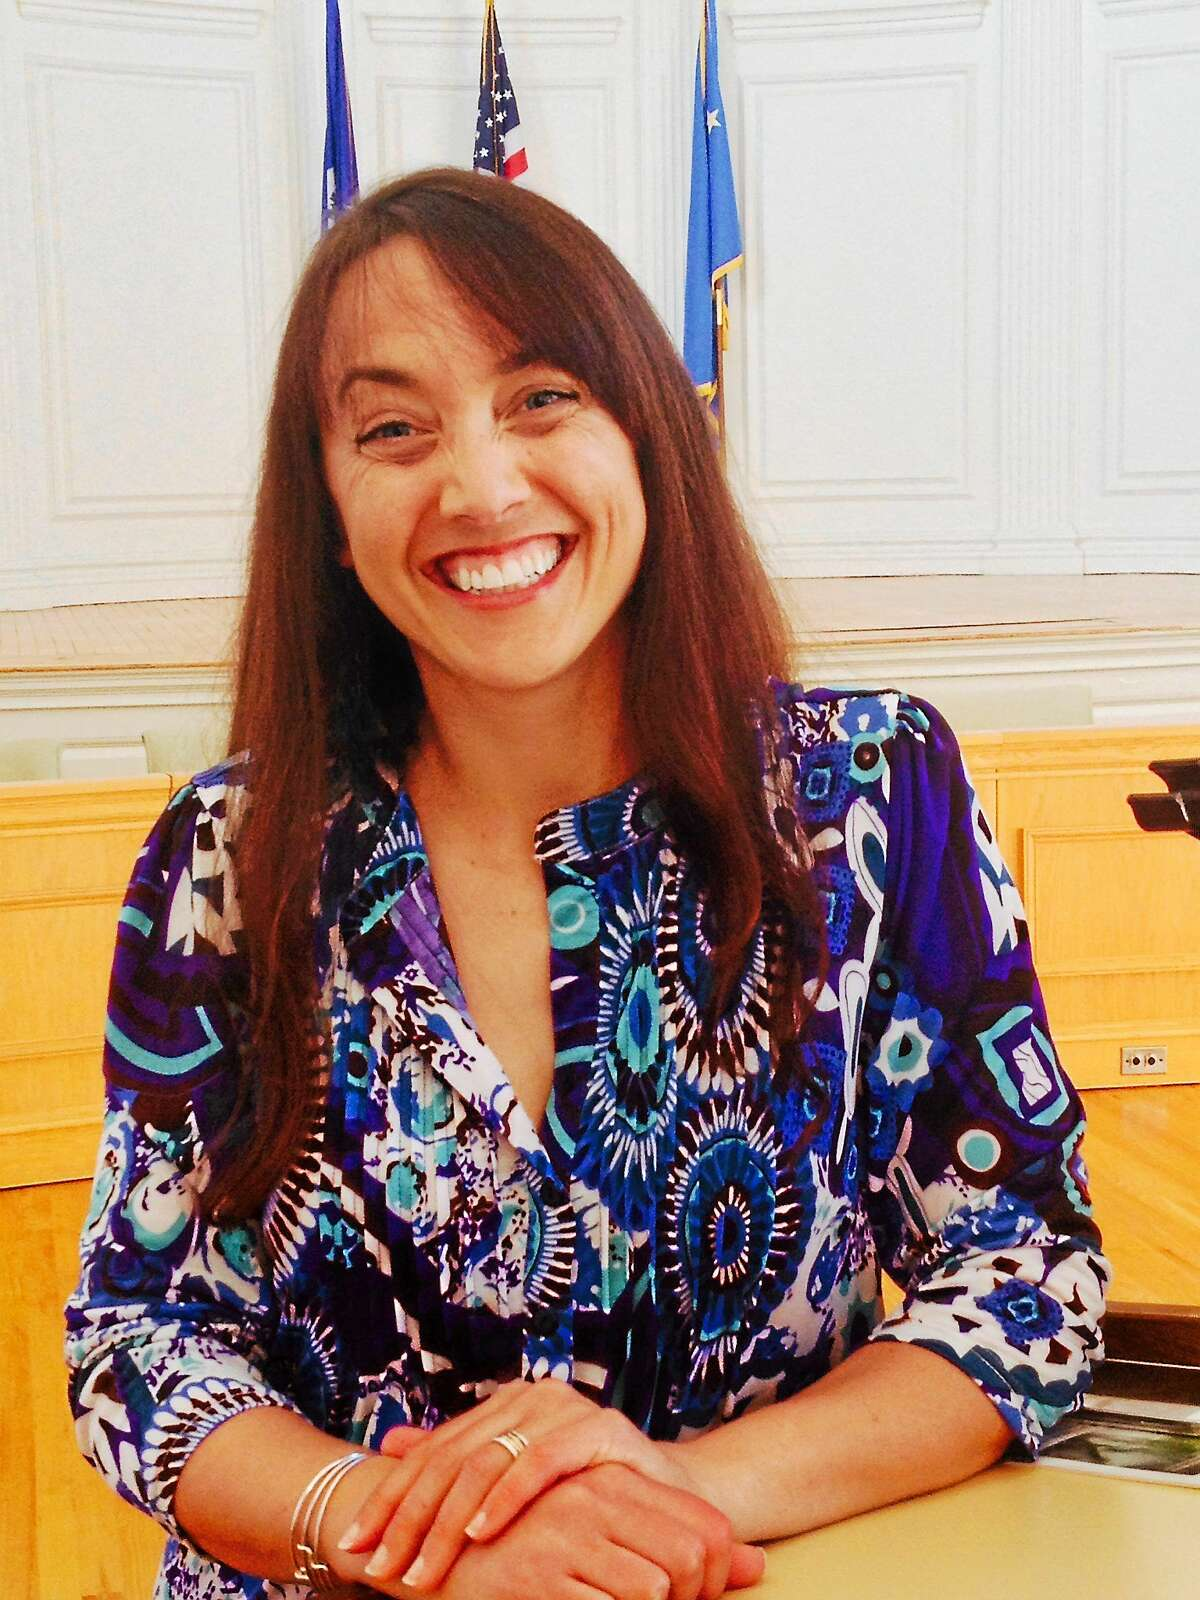 (Pam McLoughlin - New Haven Register) Colleen Kelly Alexander talks in Milford about her road to recovery after being run over by a truck while bicycling.